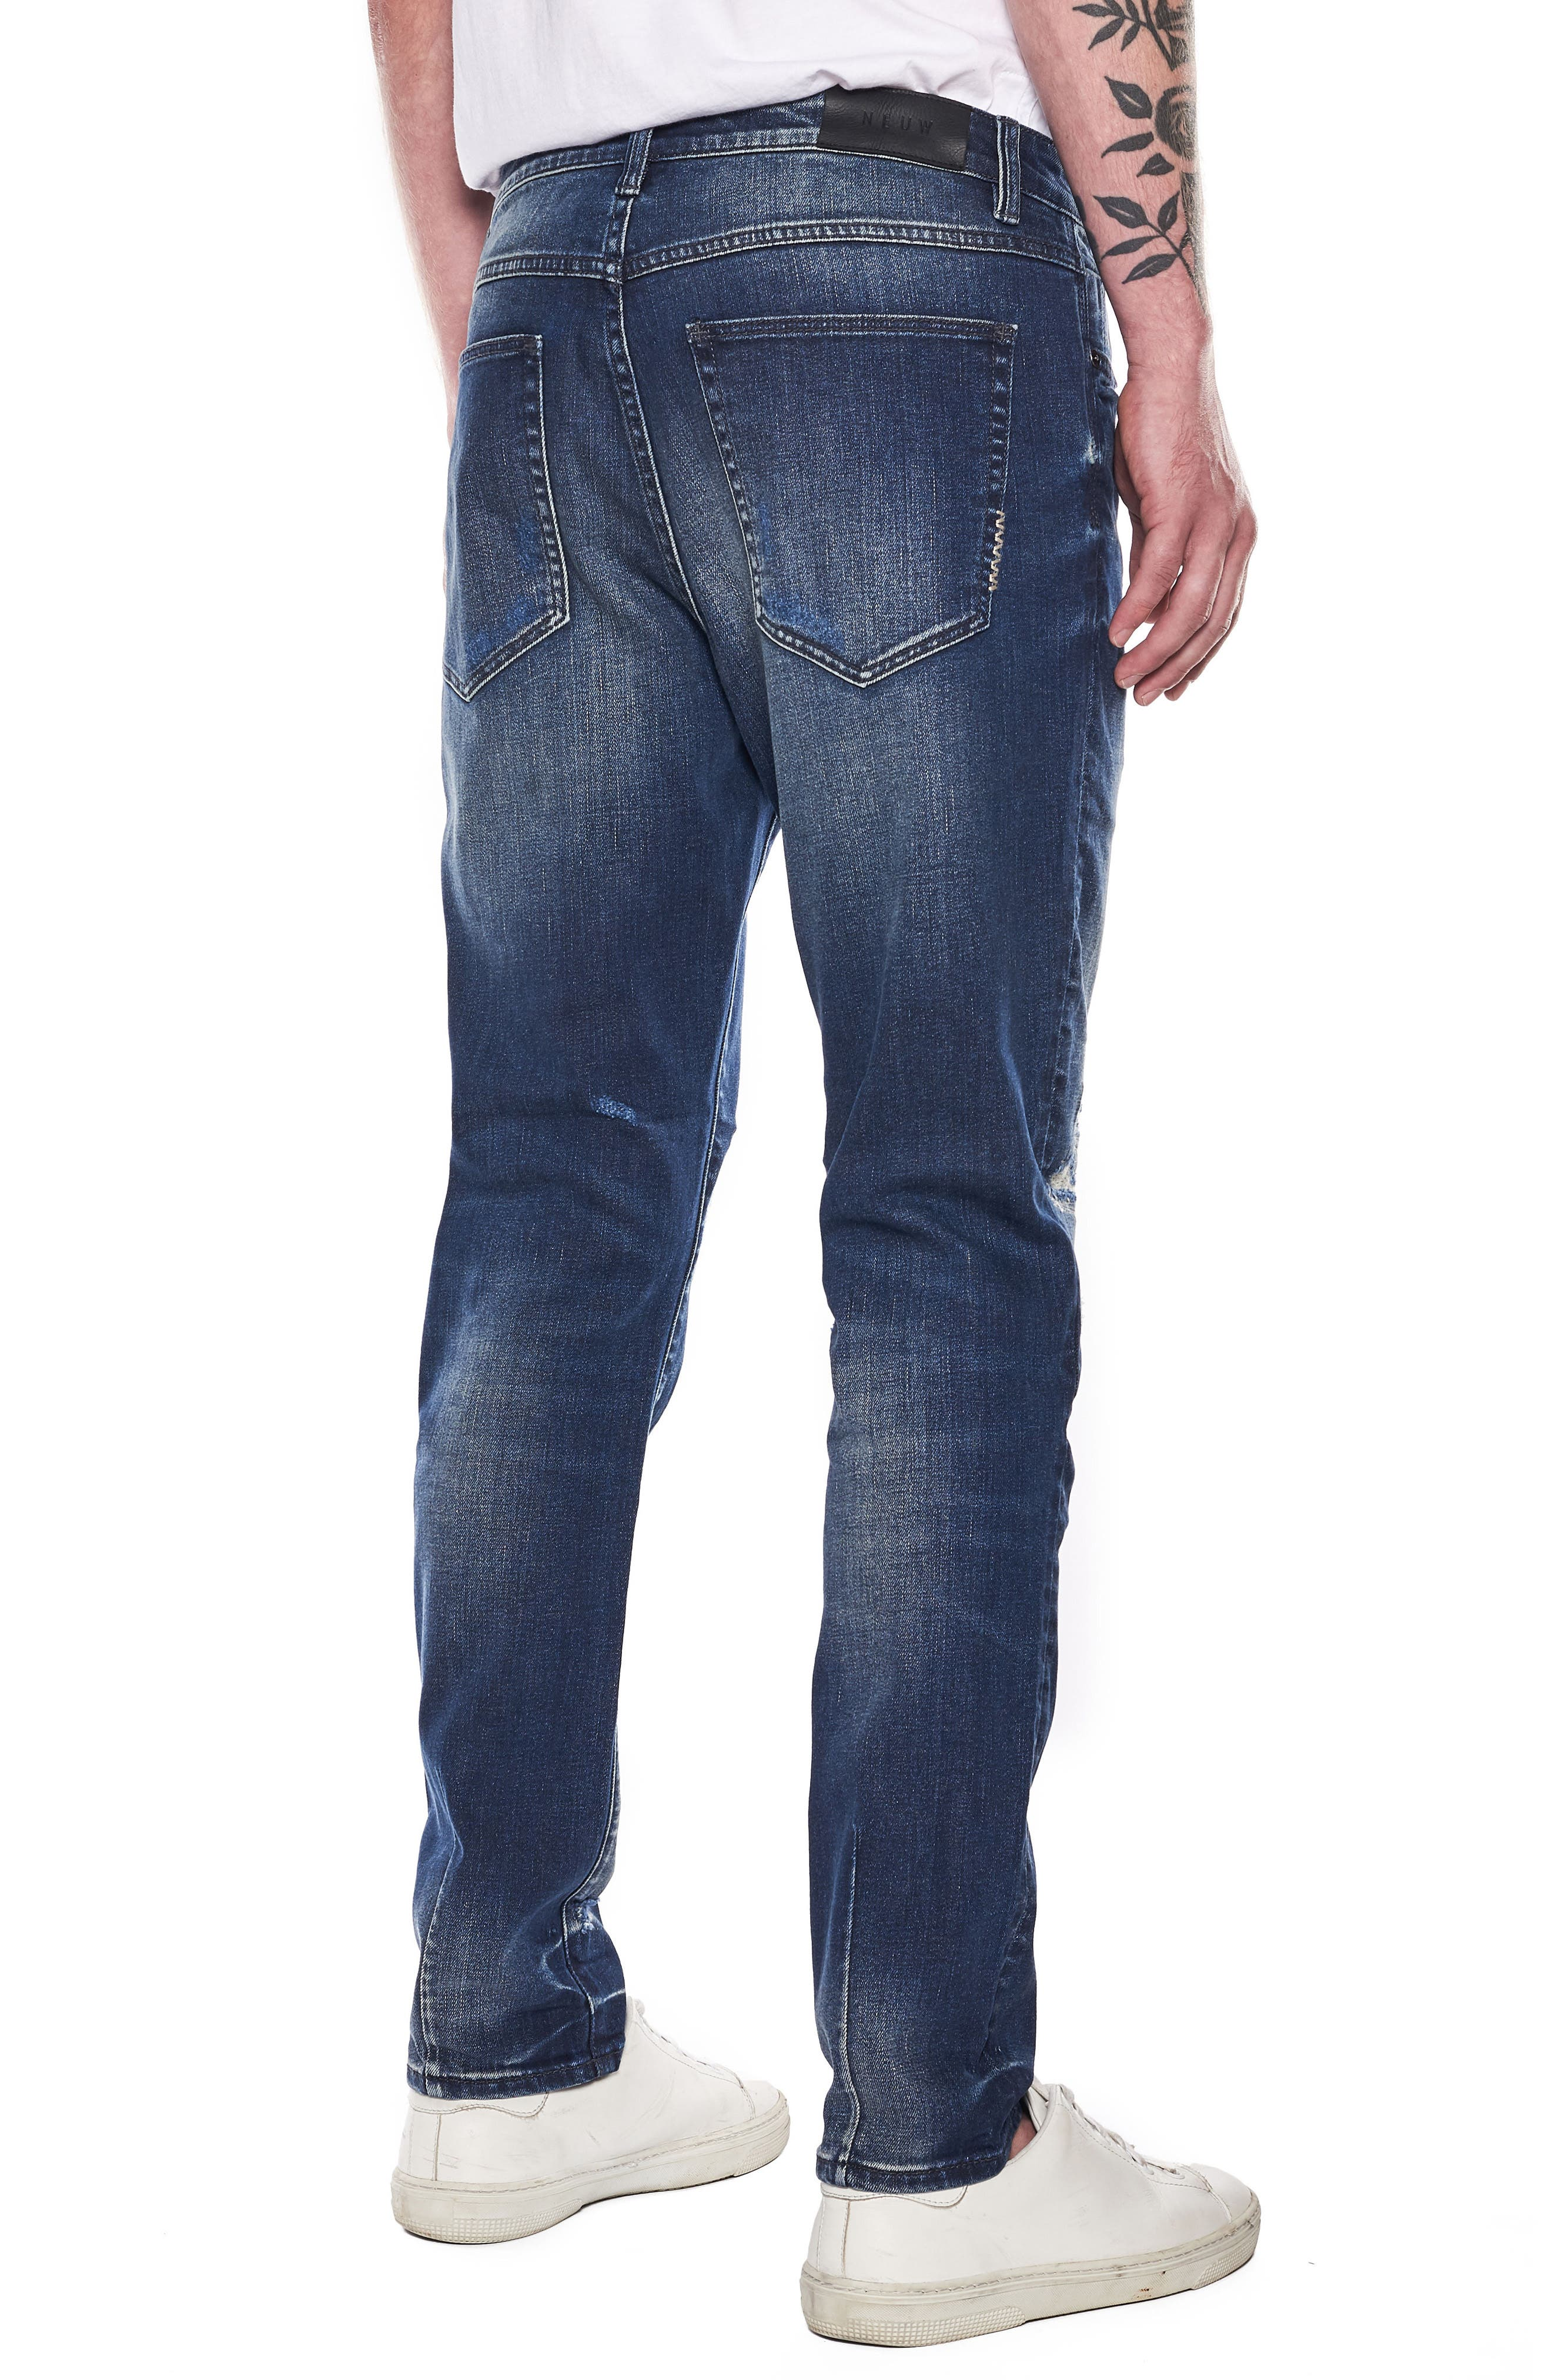 NEUW,                             Ray Slouchy Slim Fit Jeans,                             Alternate thumbnail 2, color,                             405